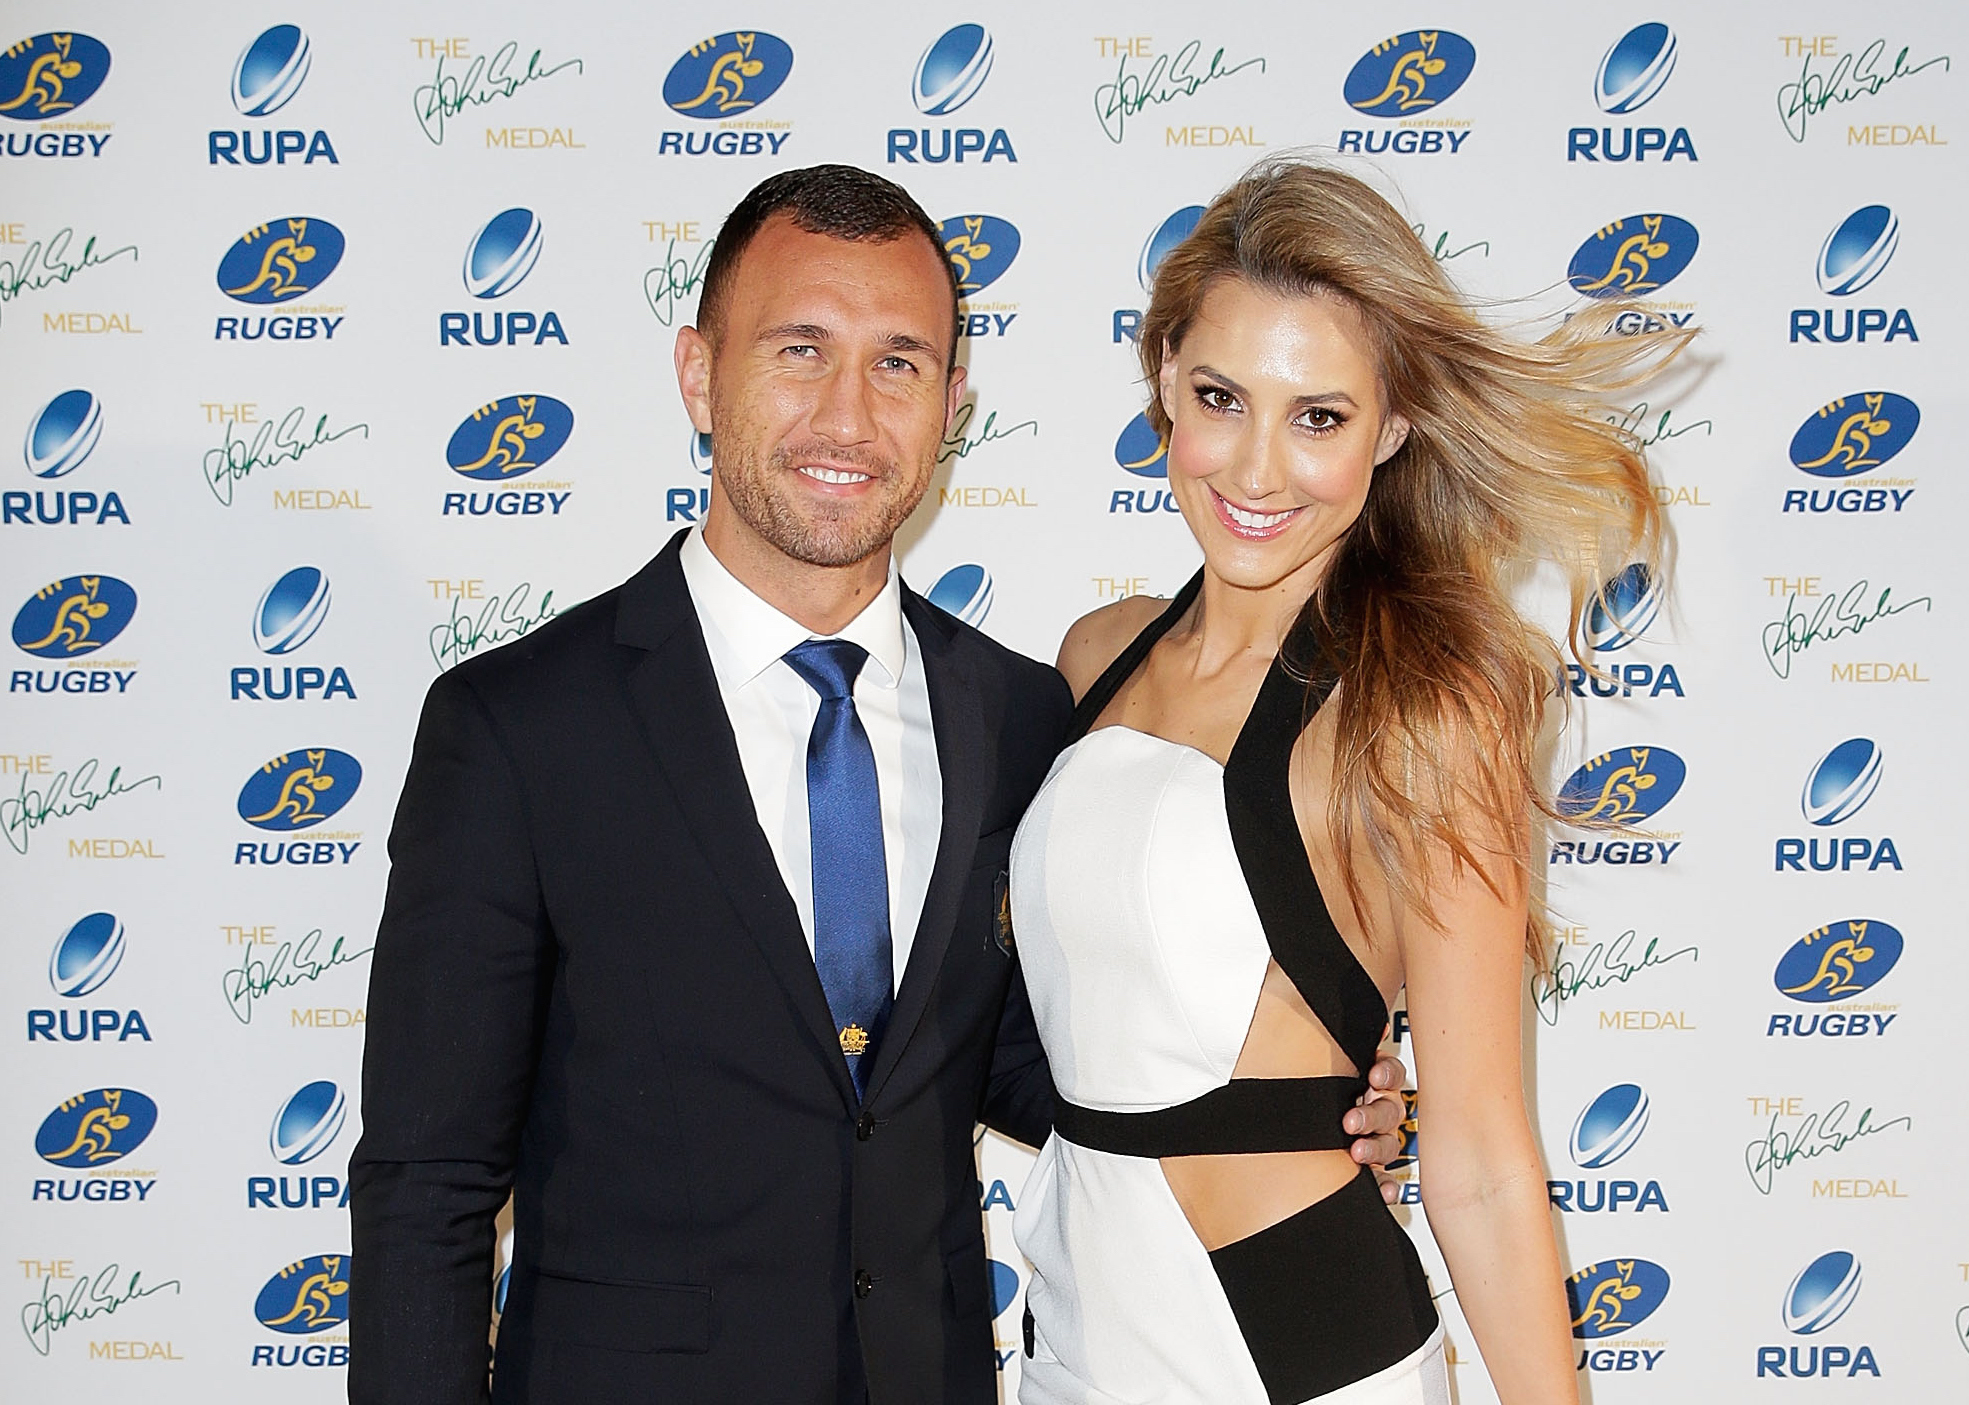 8 Rucking Hot Rugby WAGs You'll See At The Quarter Finals